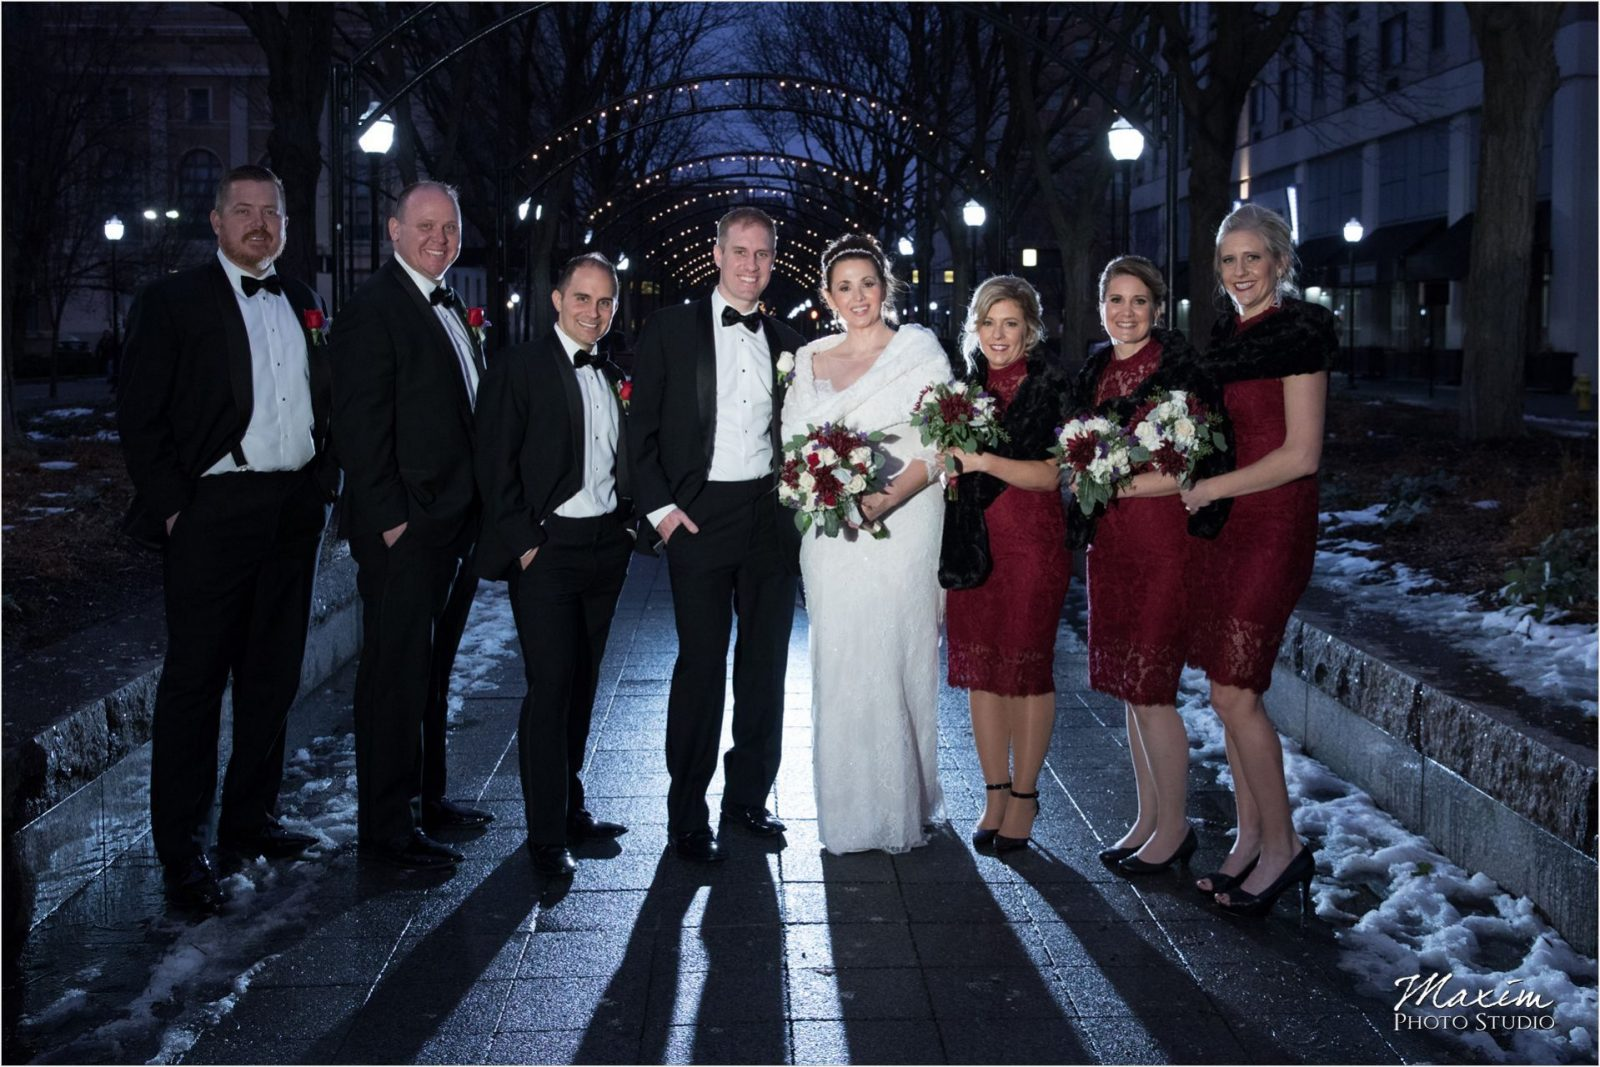 Cincinnati Garfield Park Piatt Park Bridal Party Winter wedding